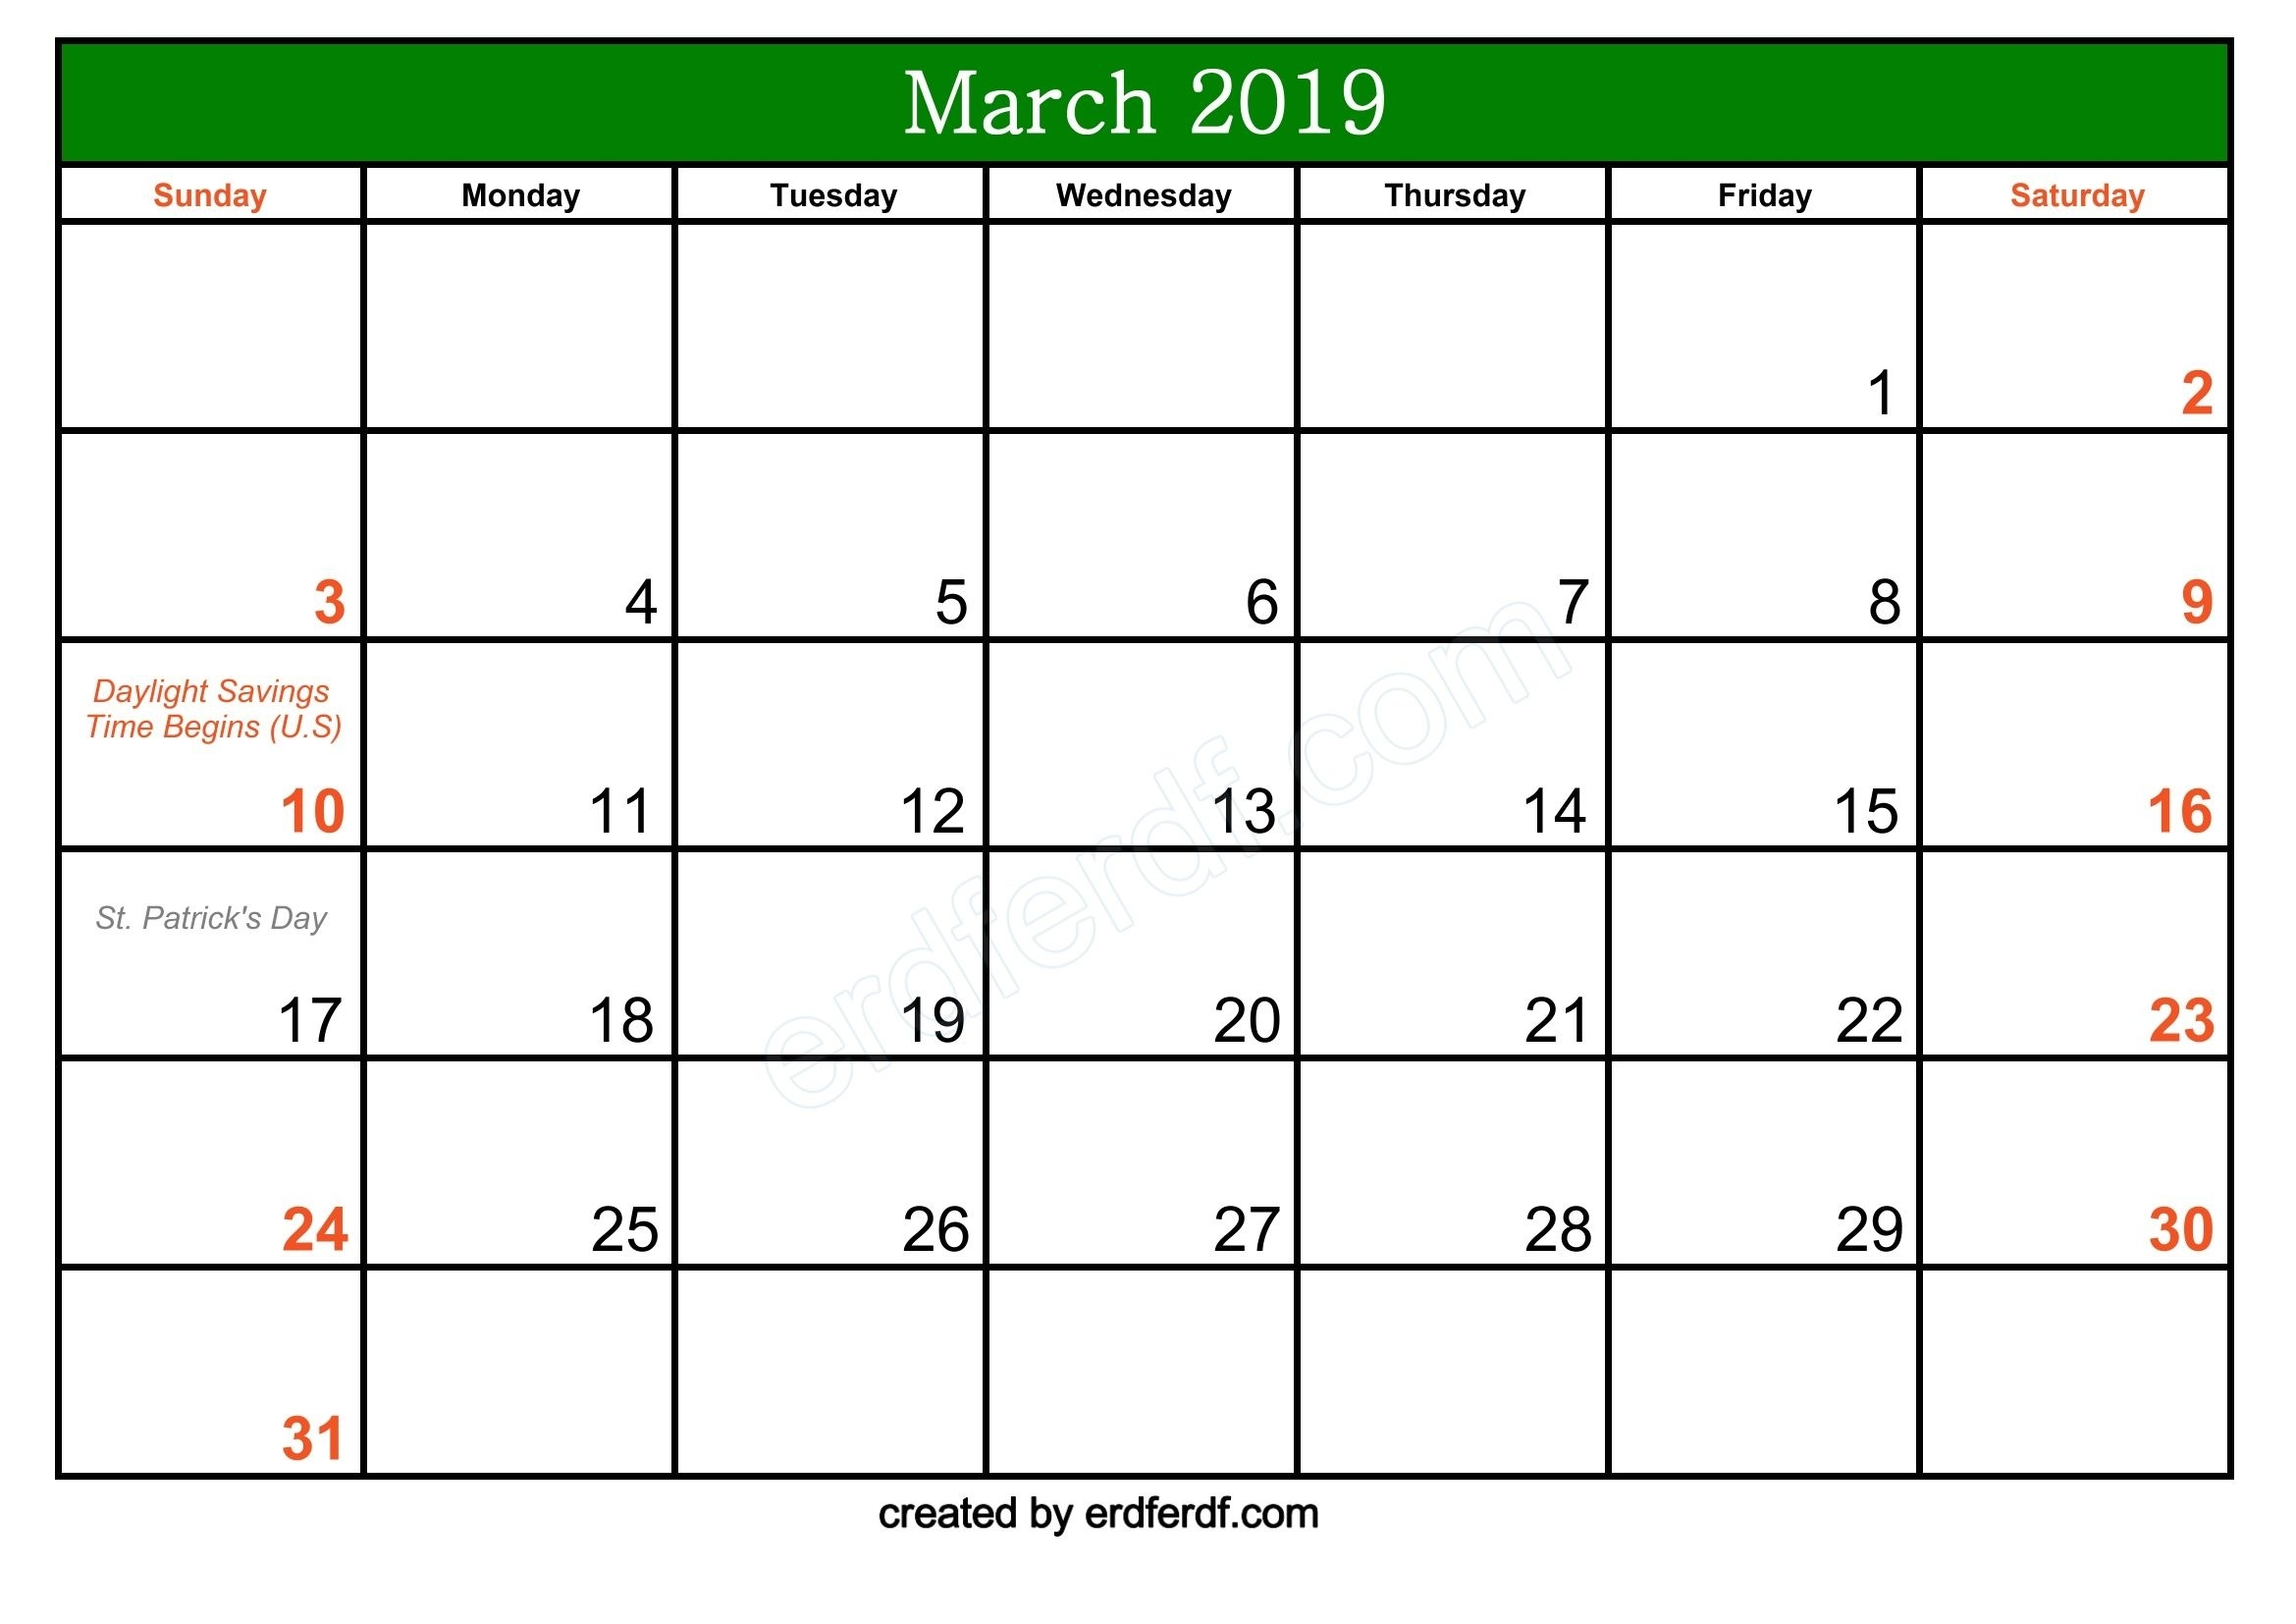 Free March 2019 Printable Calendar With Holidays | Calendar